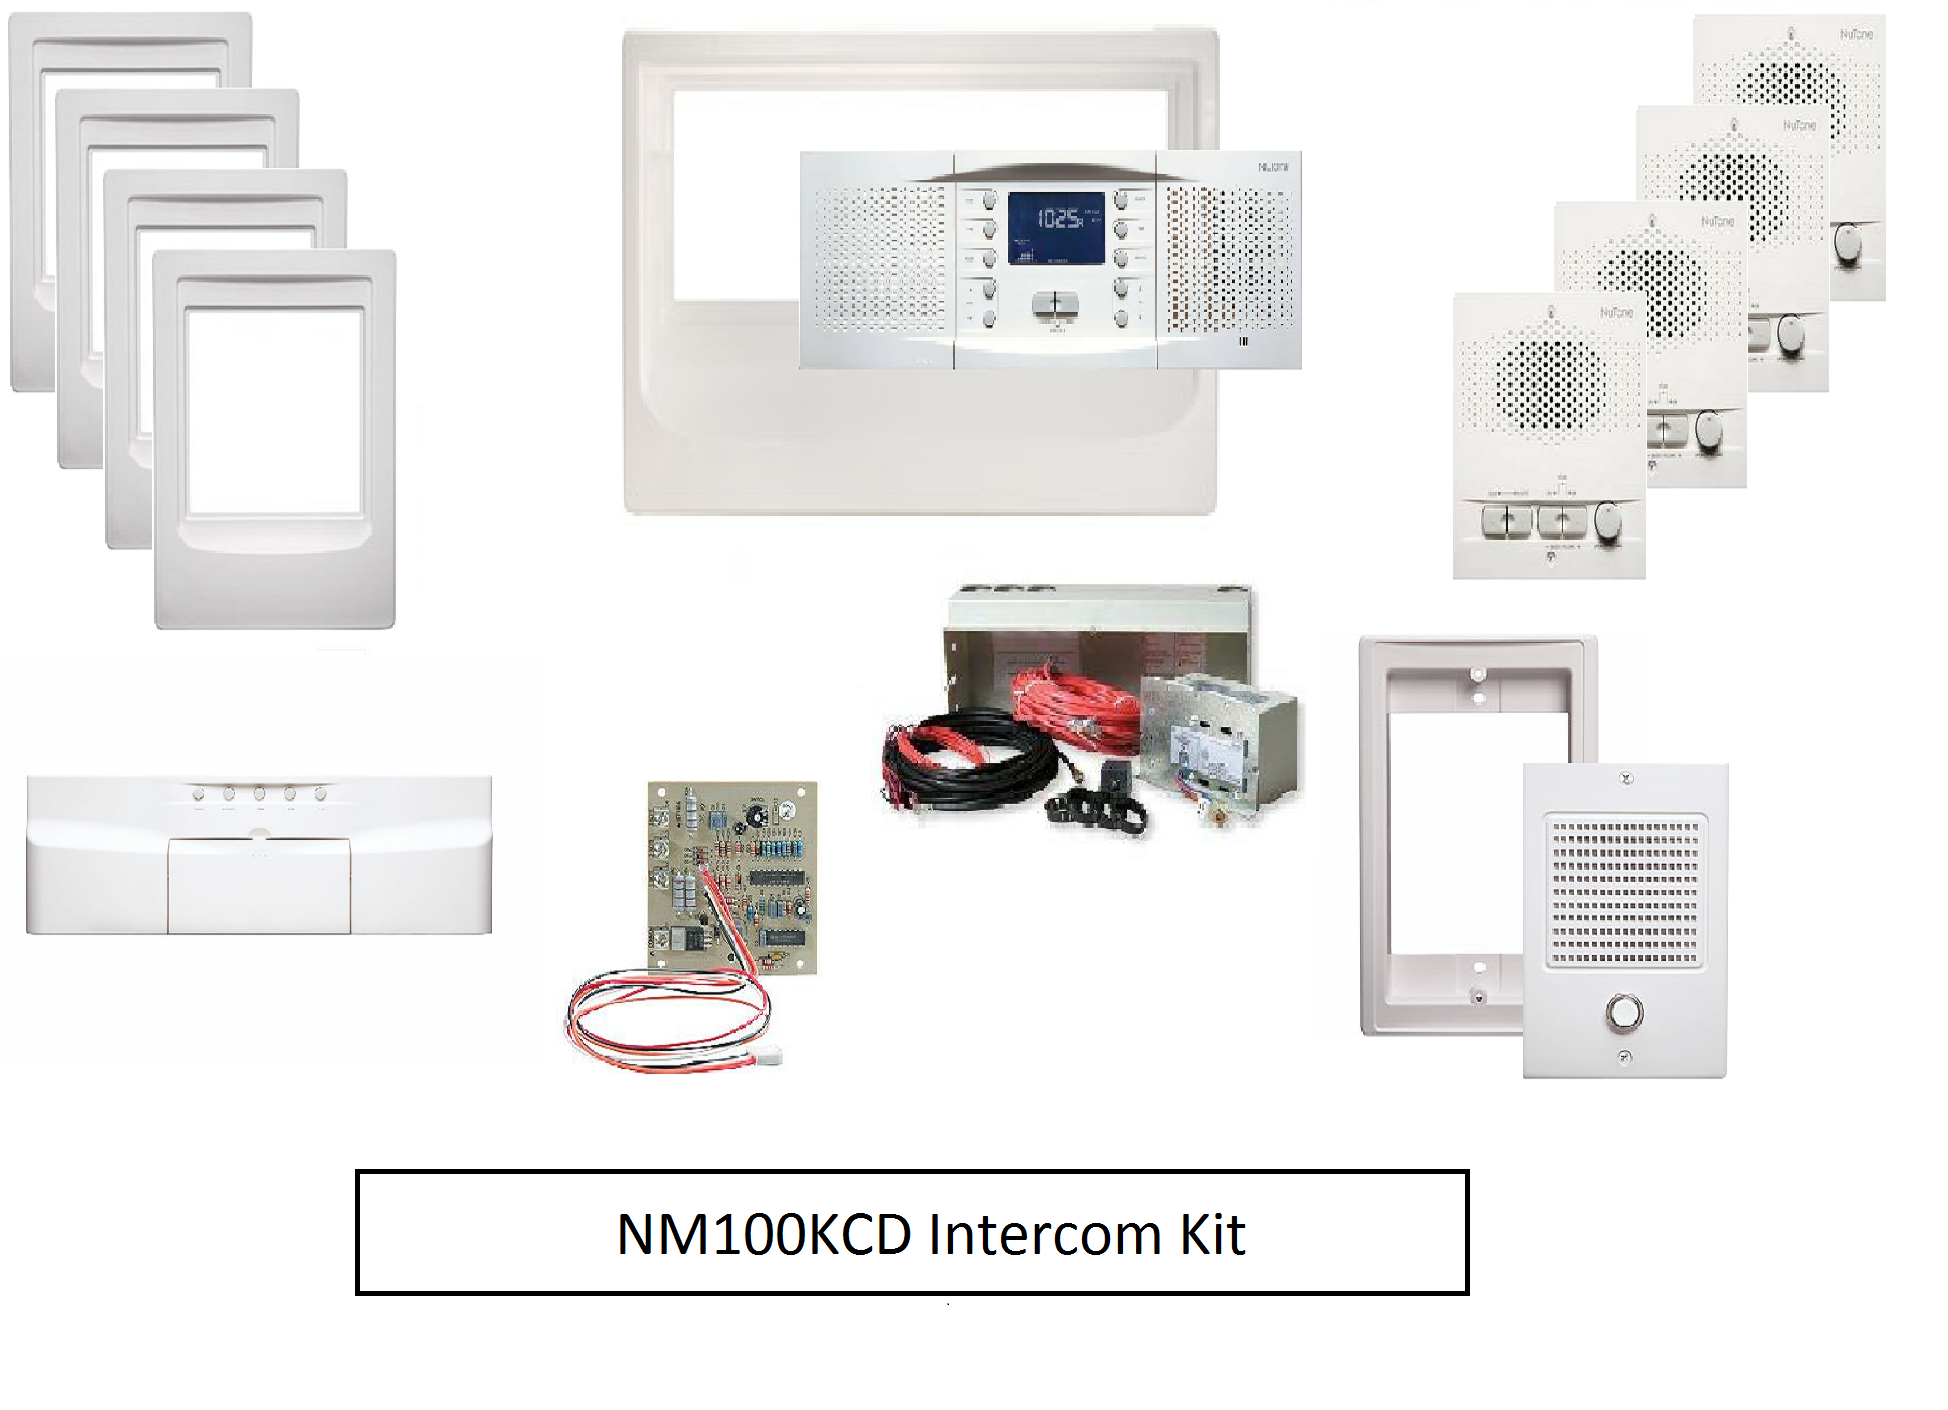 Intercom System Kit - Nutone NM100KCD - NM100KCD4WH